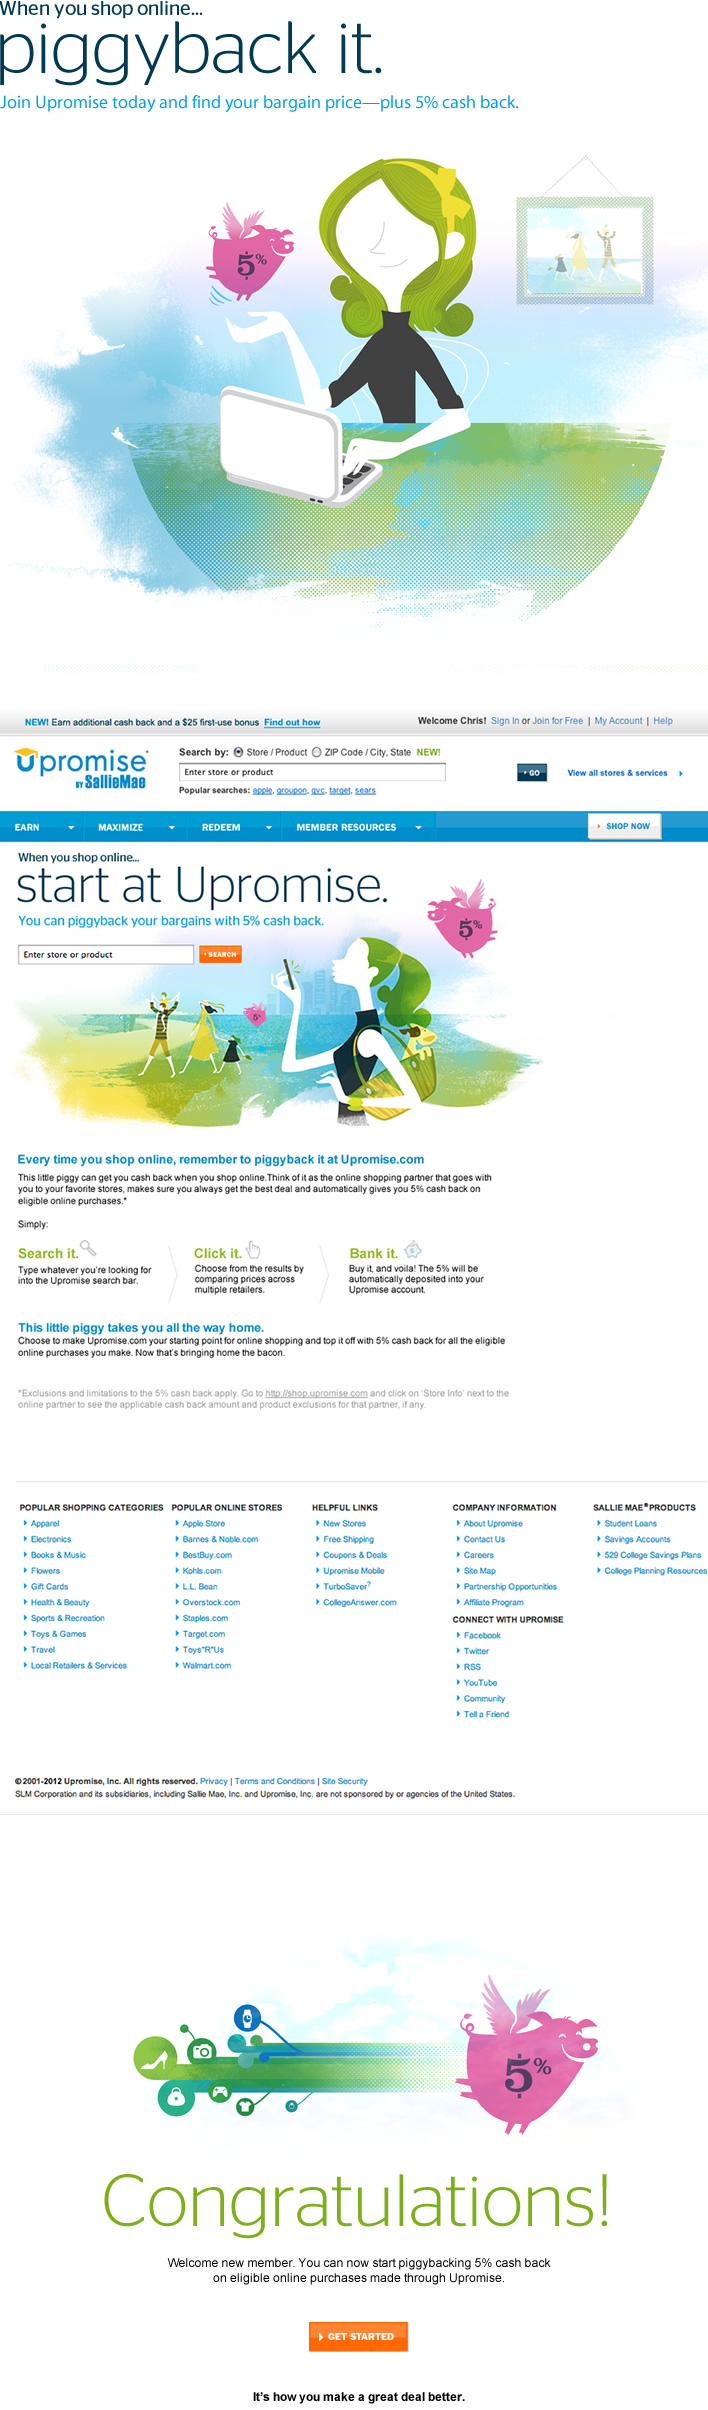 Upromise by Sallie Mae - Giving a brand its wings